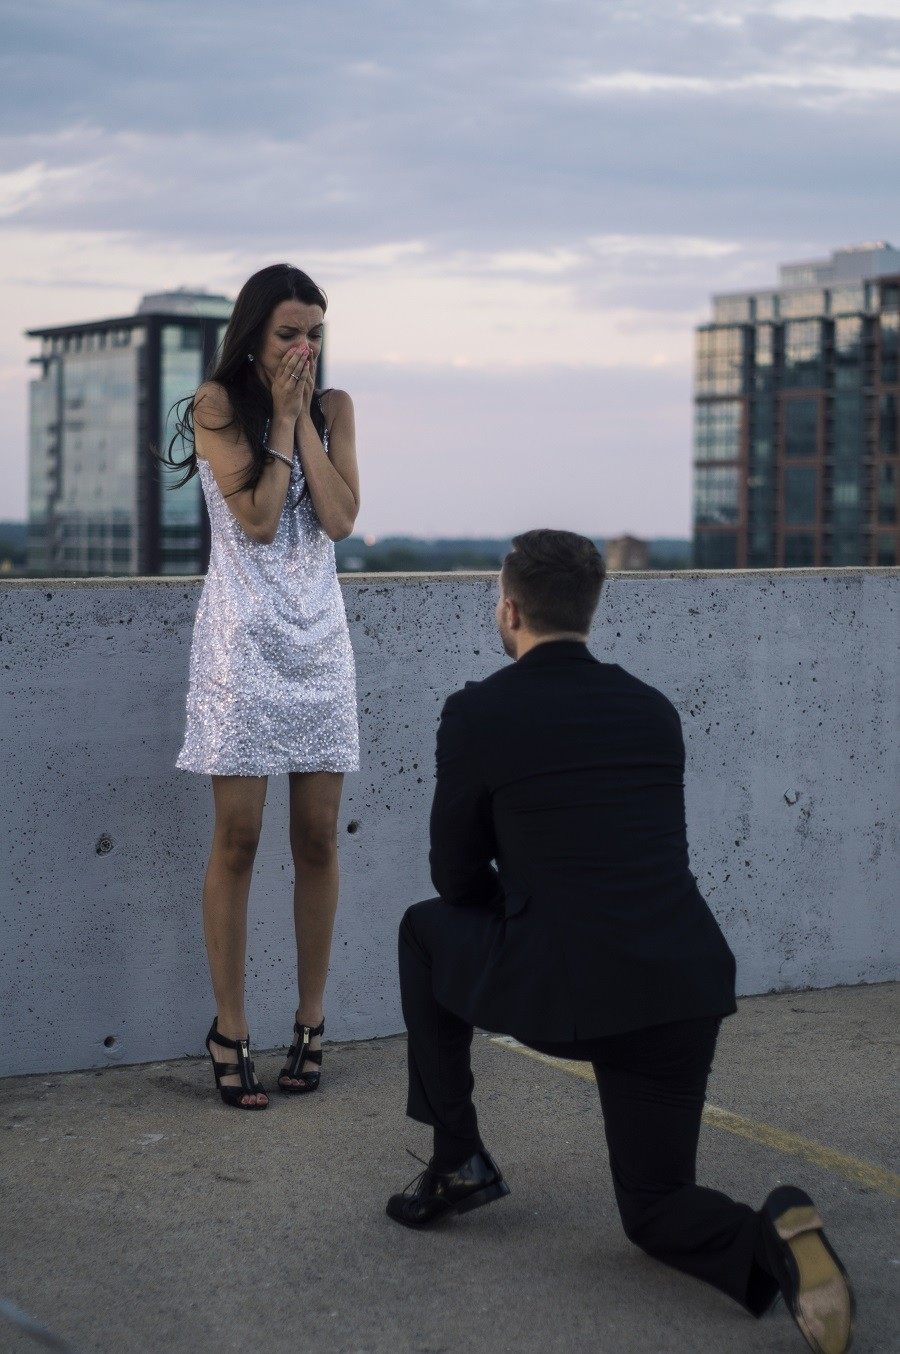 Image 6 of Guy Fakes an Entire Action Film to Propose to his Girlfriend